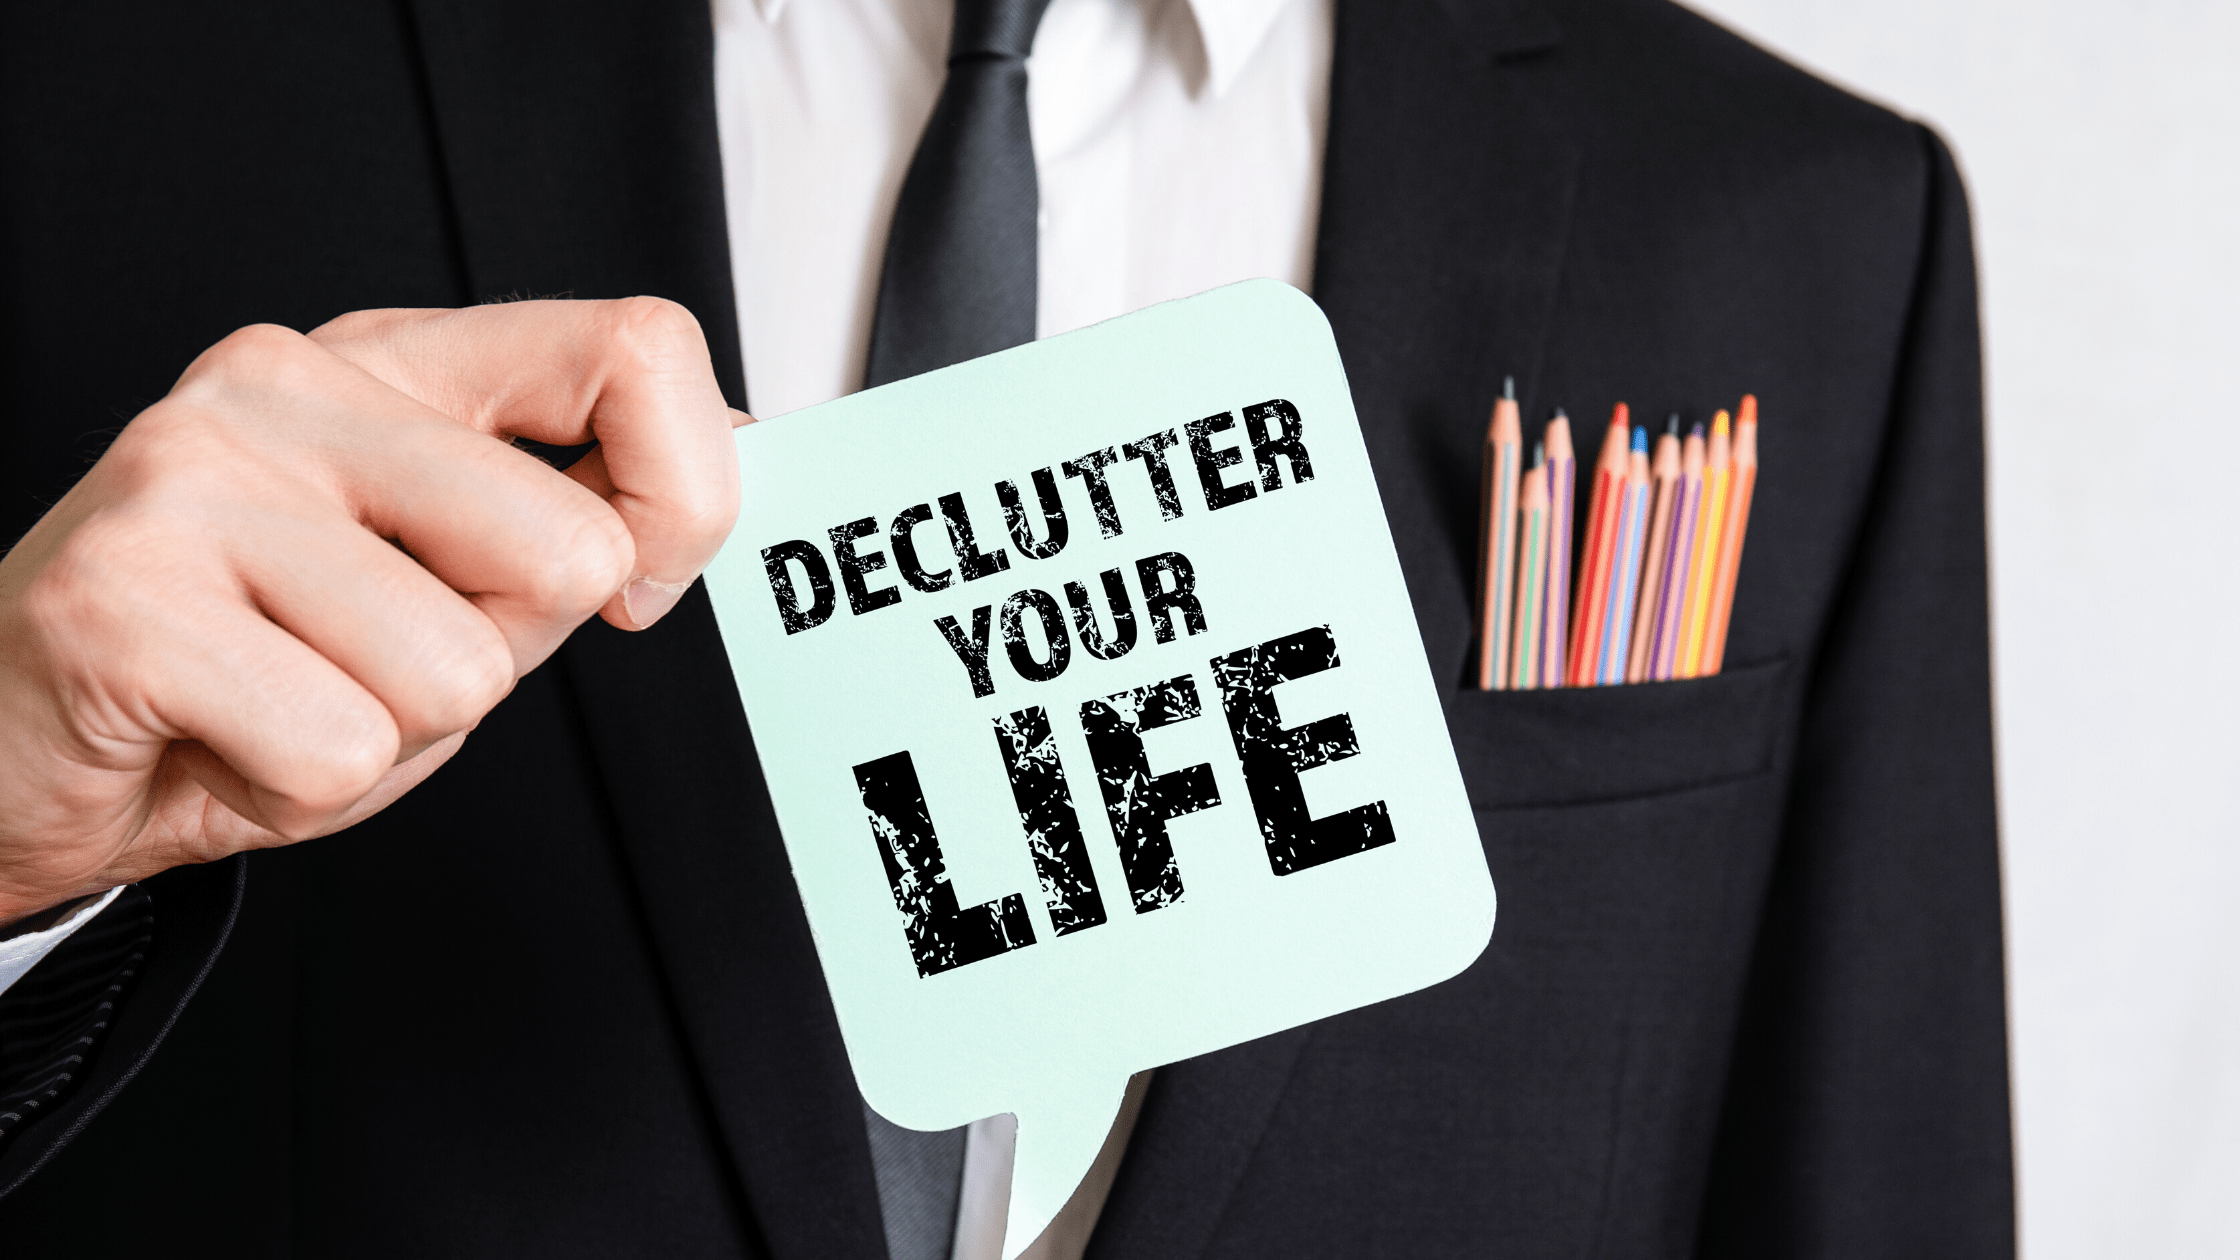 Declutter Your Life and Be happy!- bigbraincoach